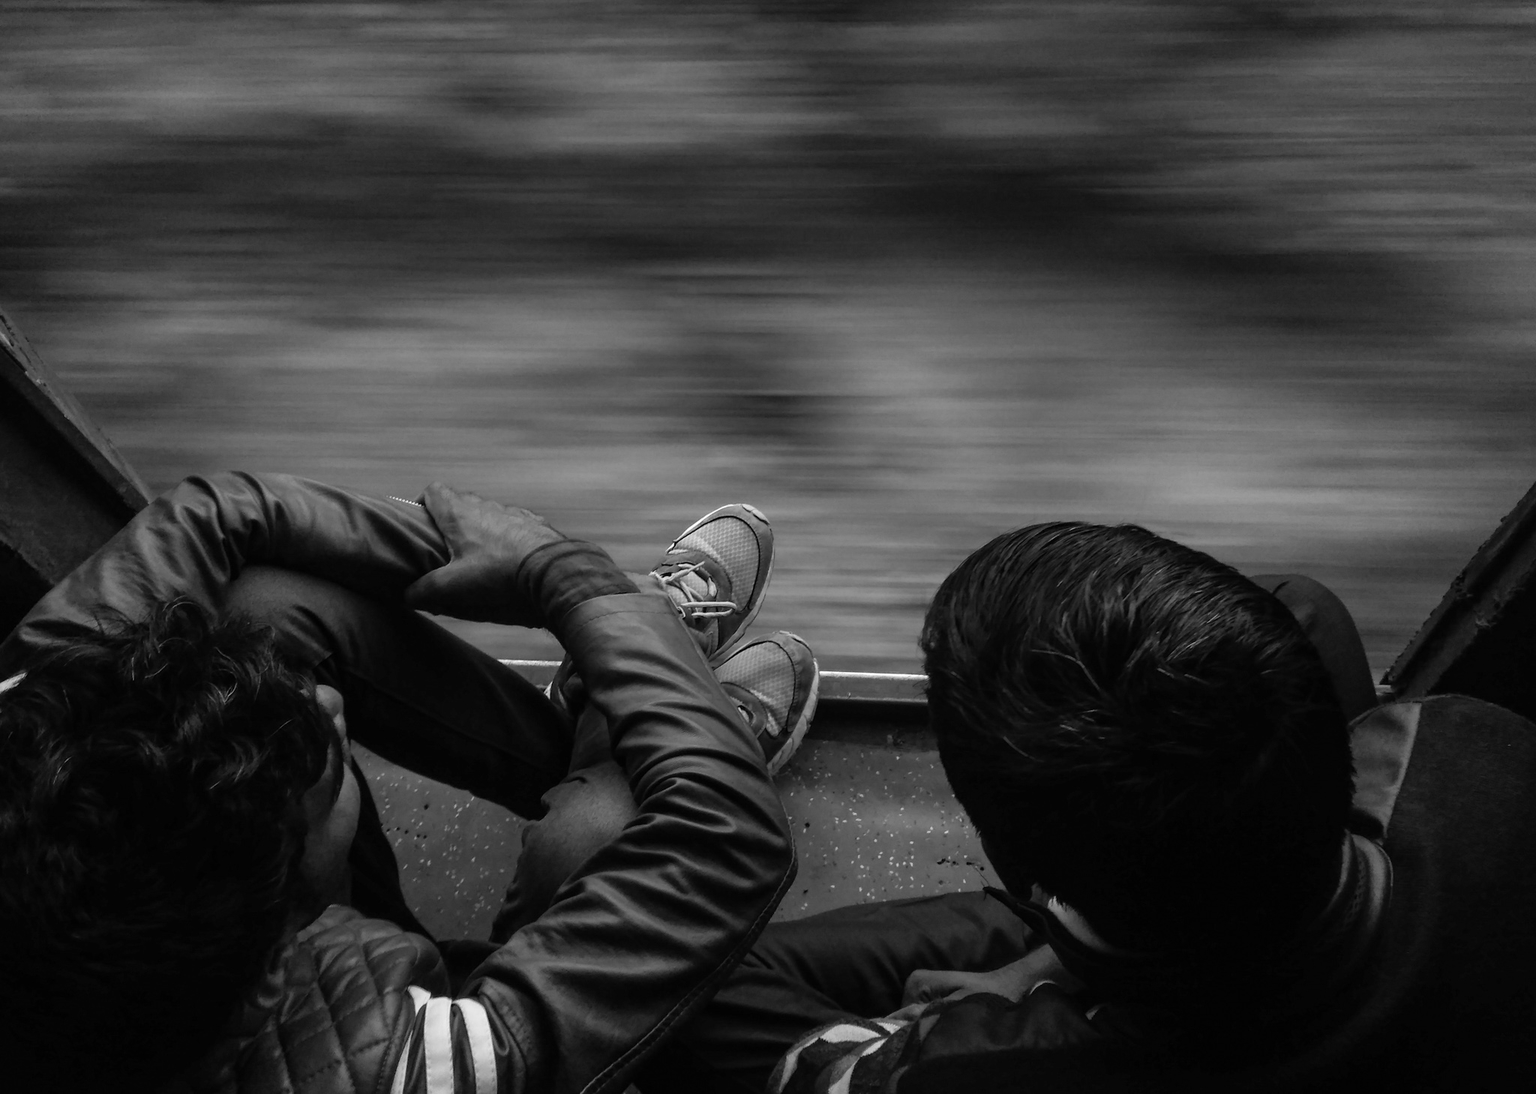 Two boys are sitting just before the door in a moving train.